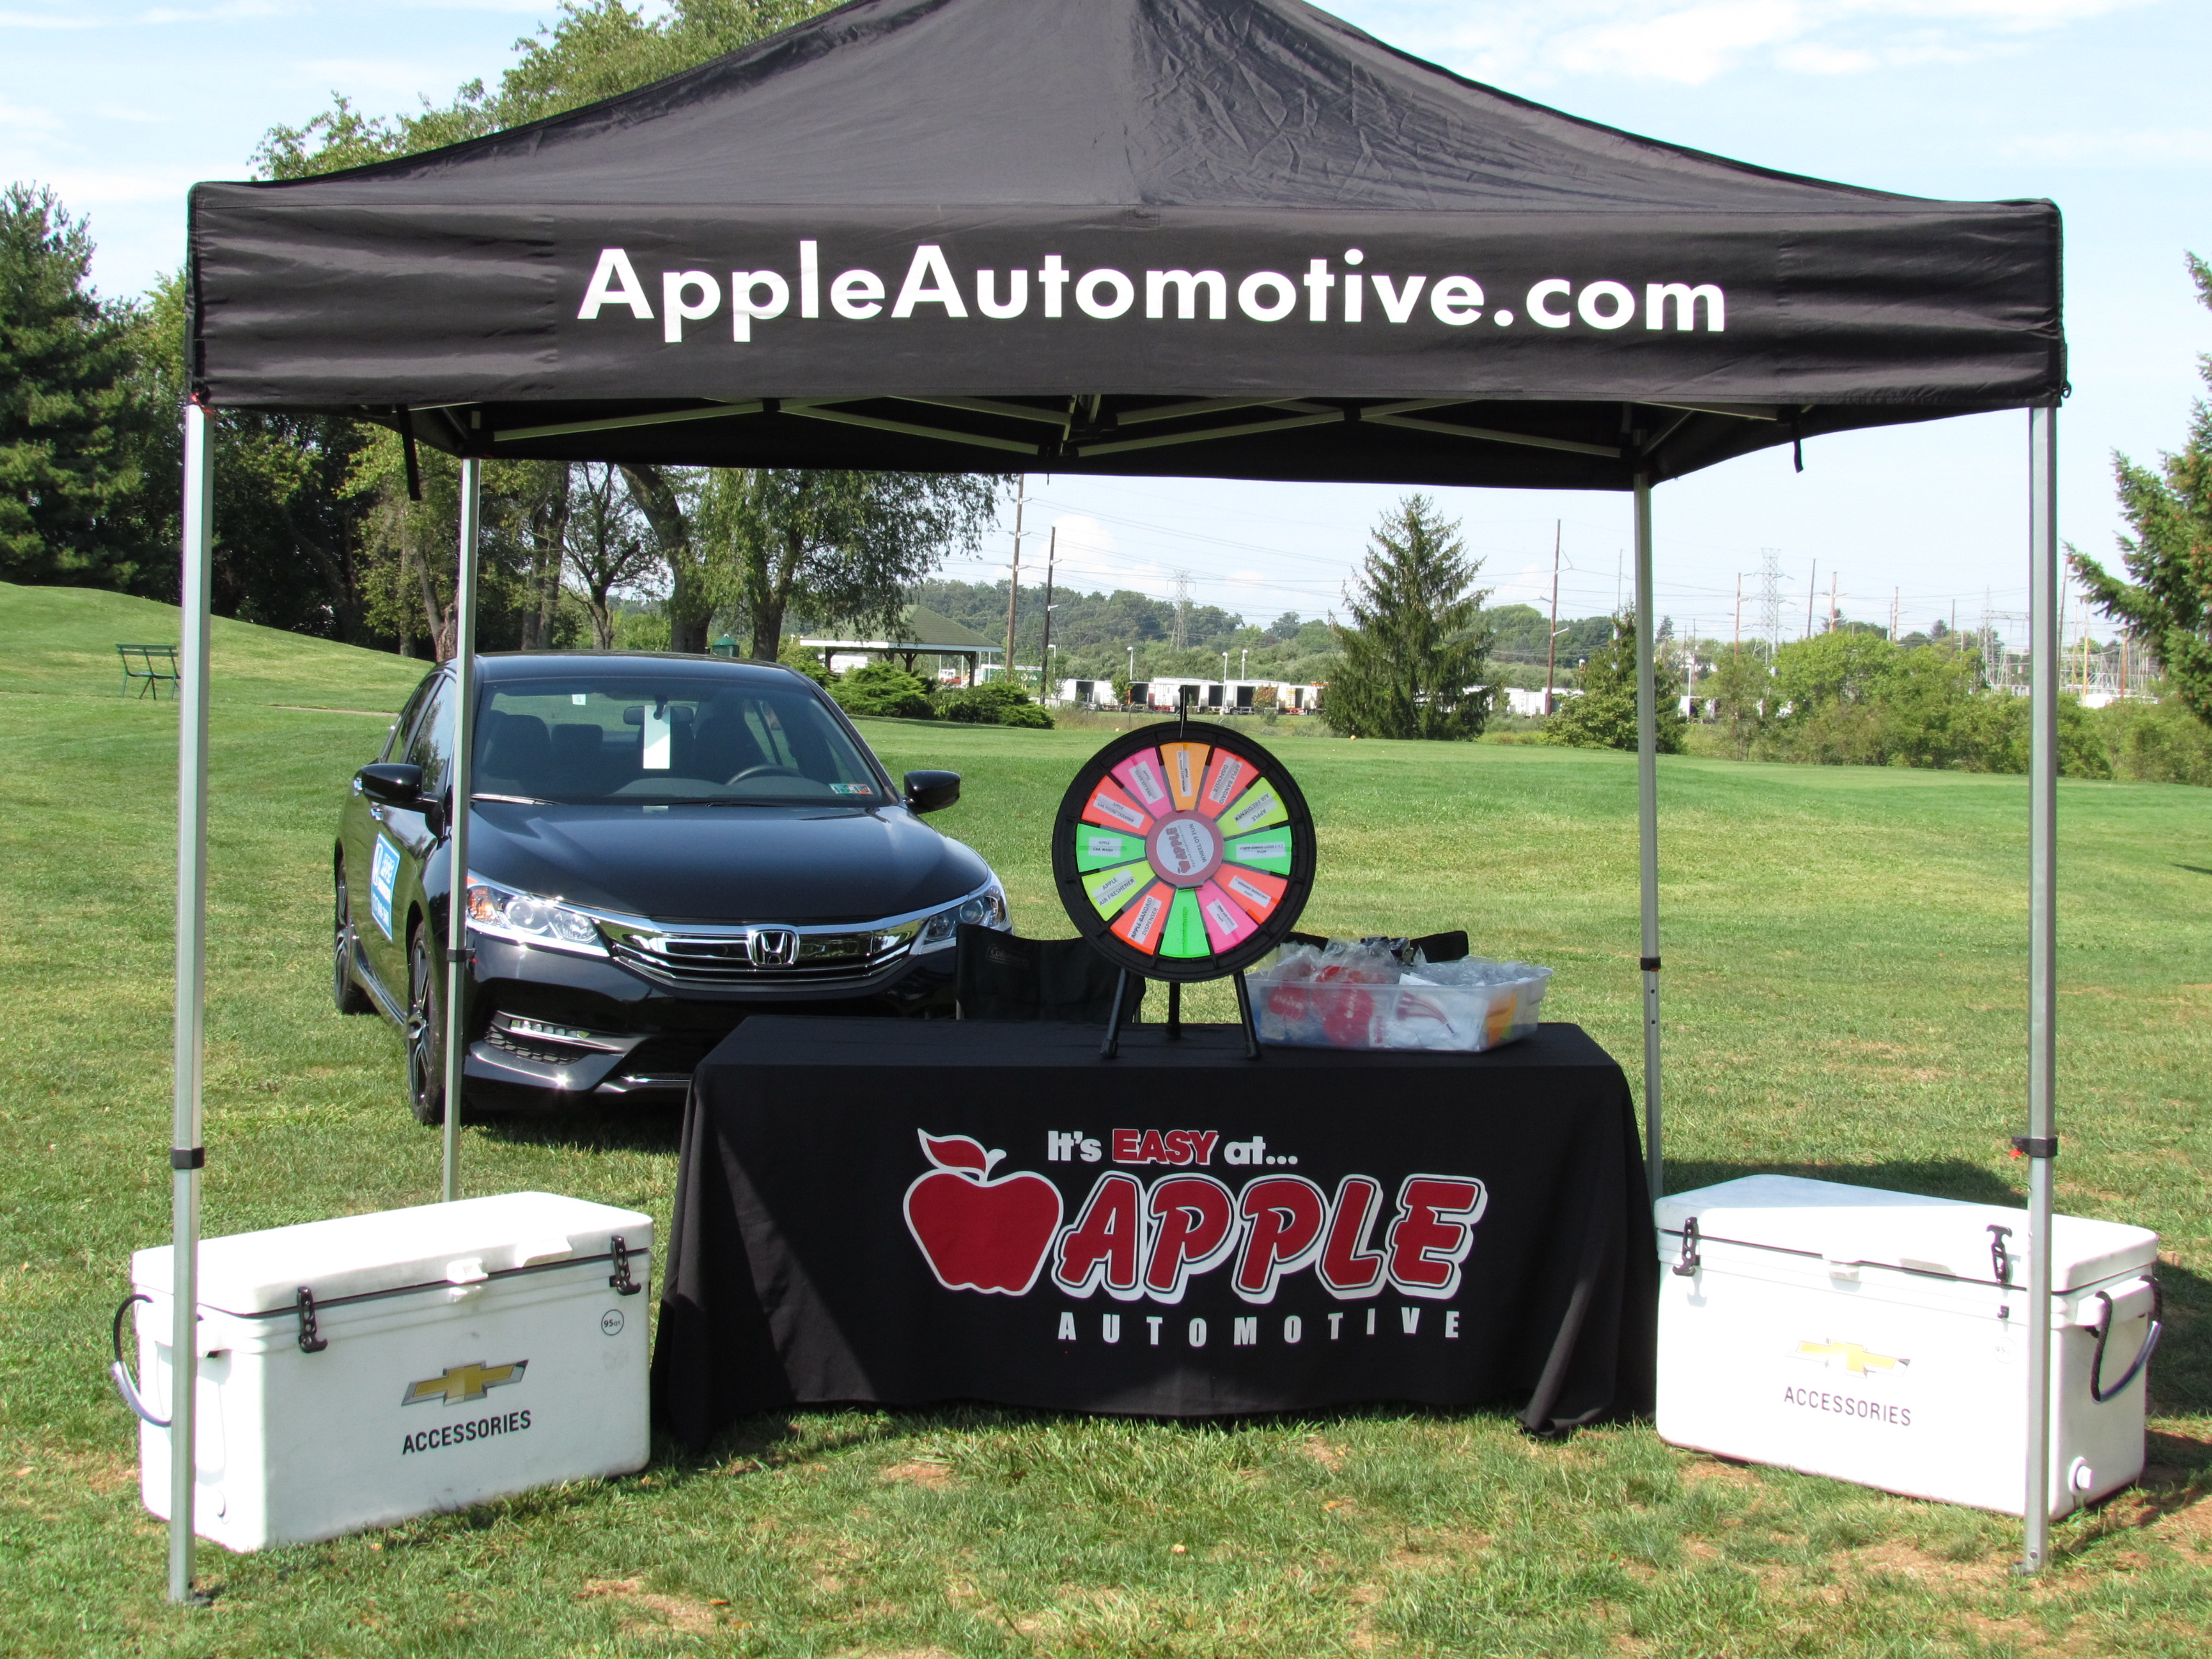 Servants 11th Annual Golf Outing - Default Image of Business Tent on the Tee